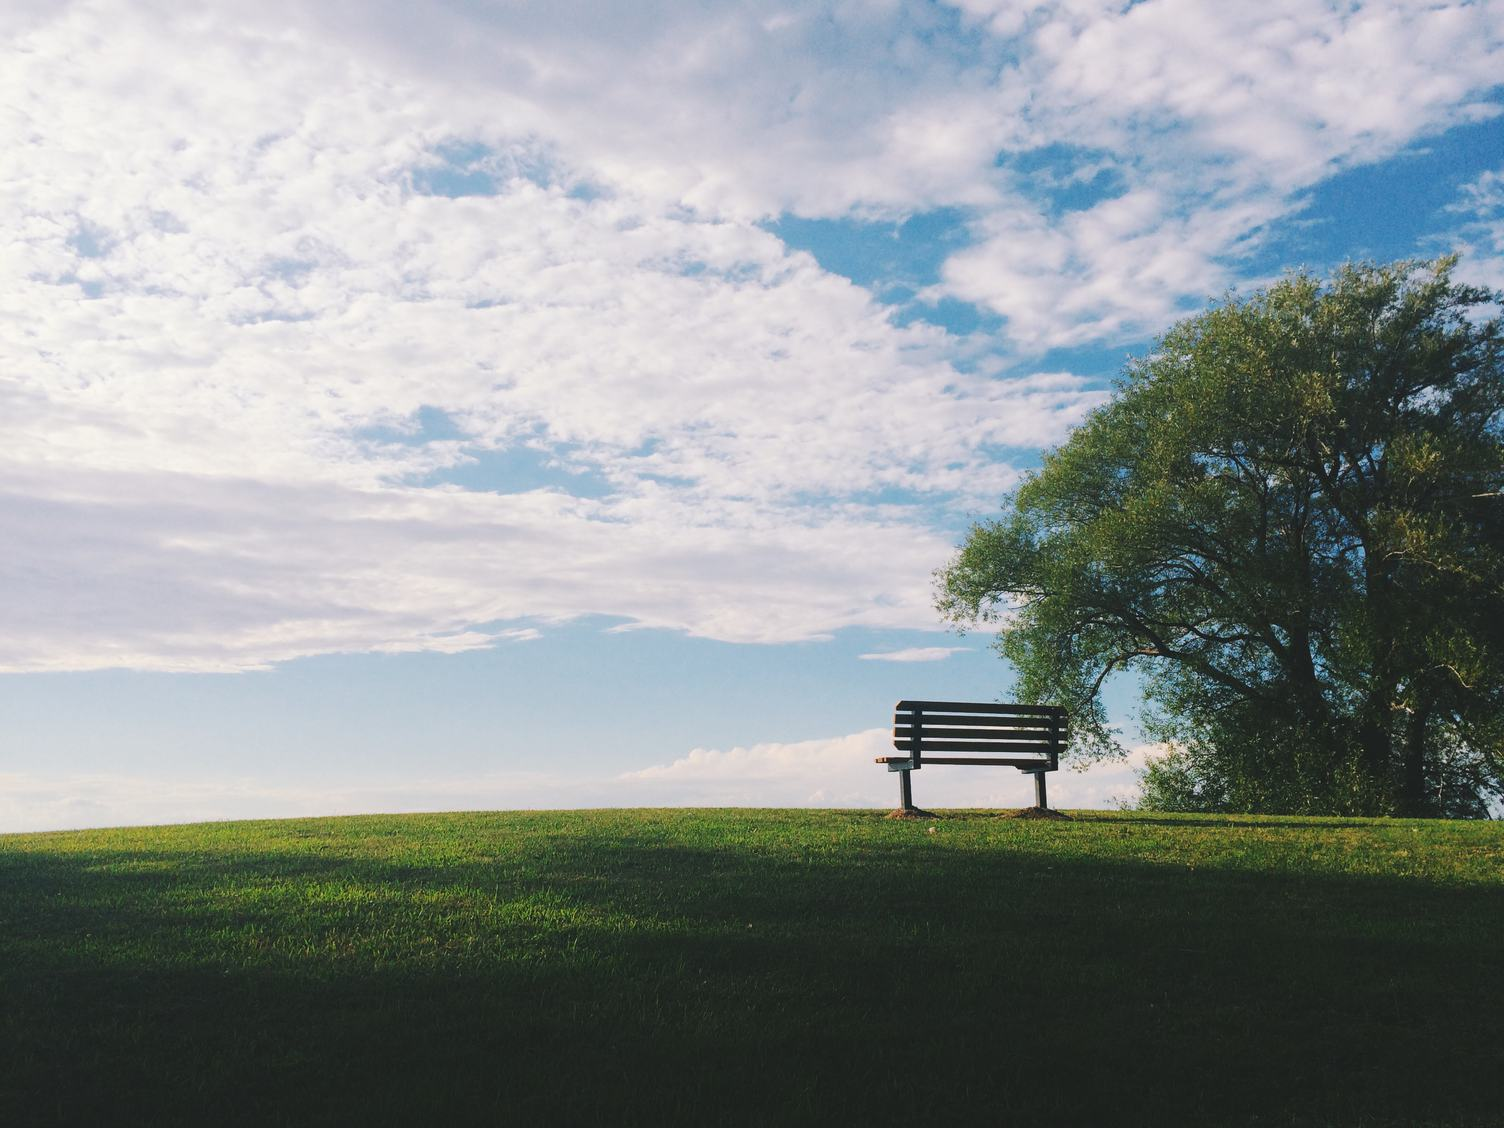 A Wooded Bench on a Grassy Hill